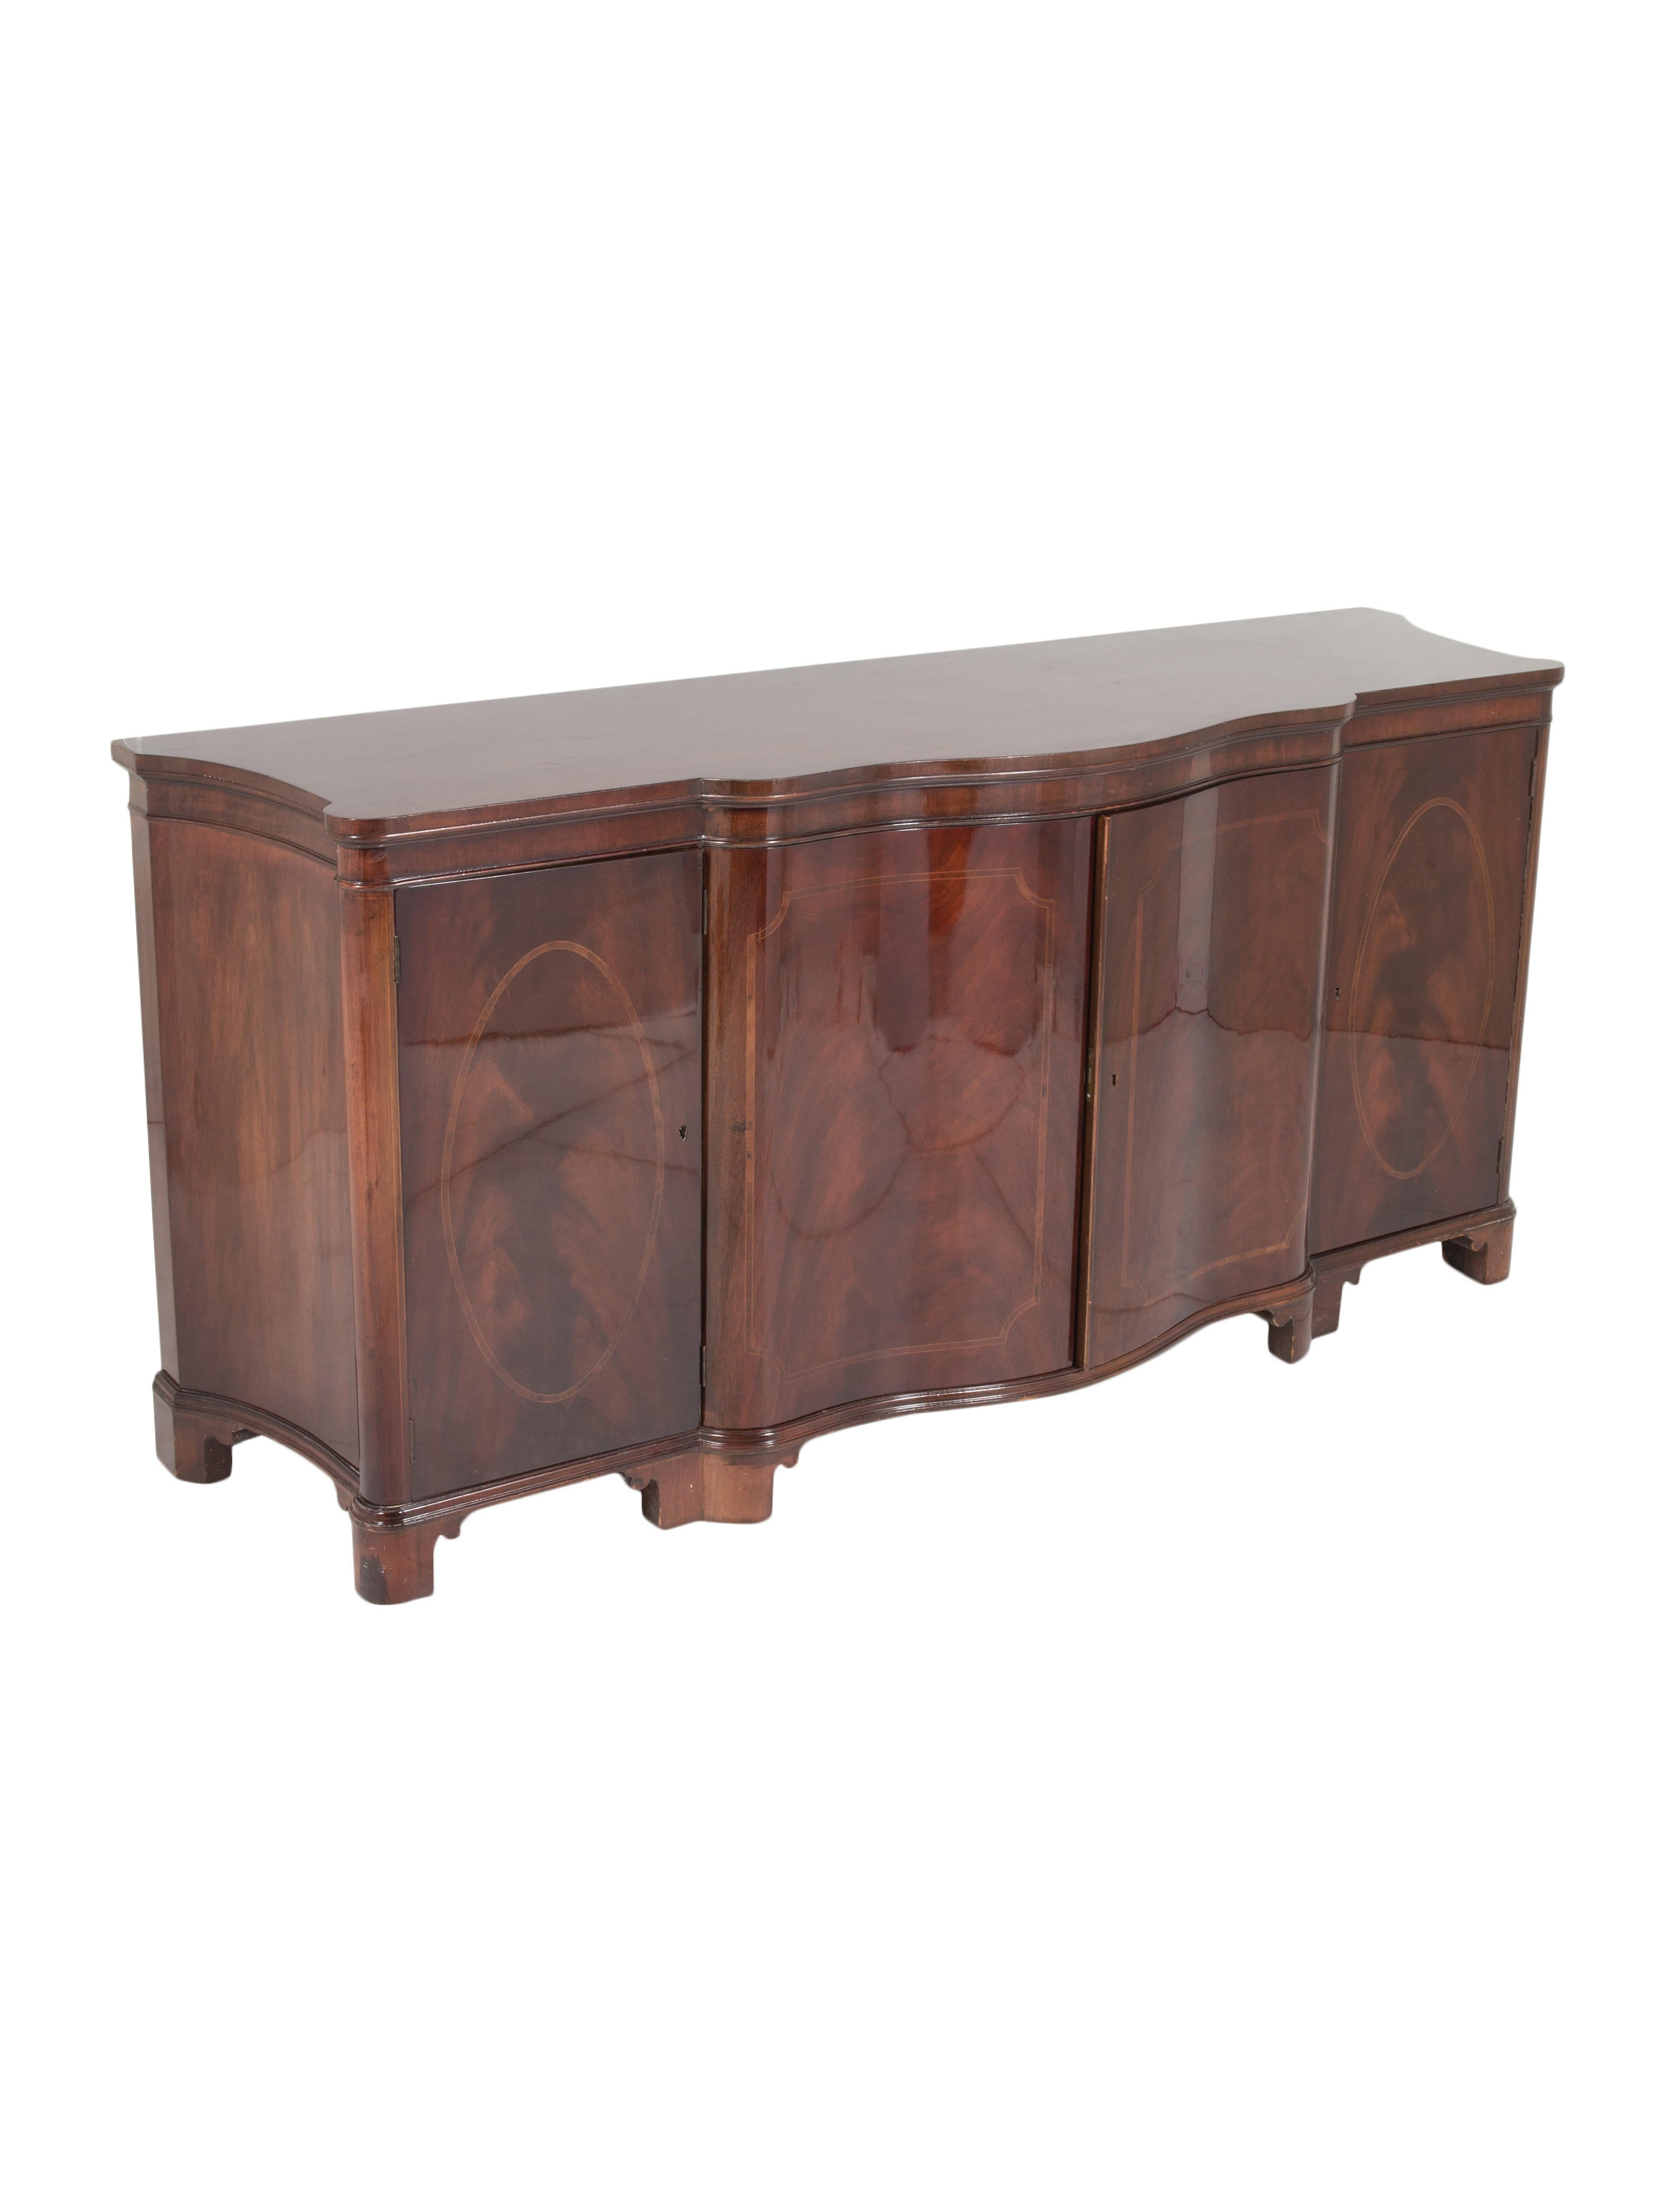 Baker mahogany sideboard furniture furni20447 the for Baker furniture